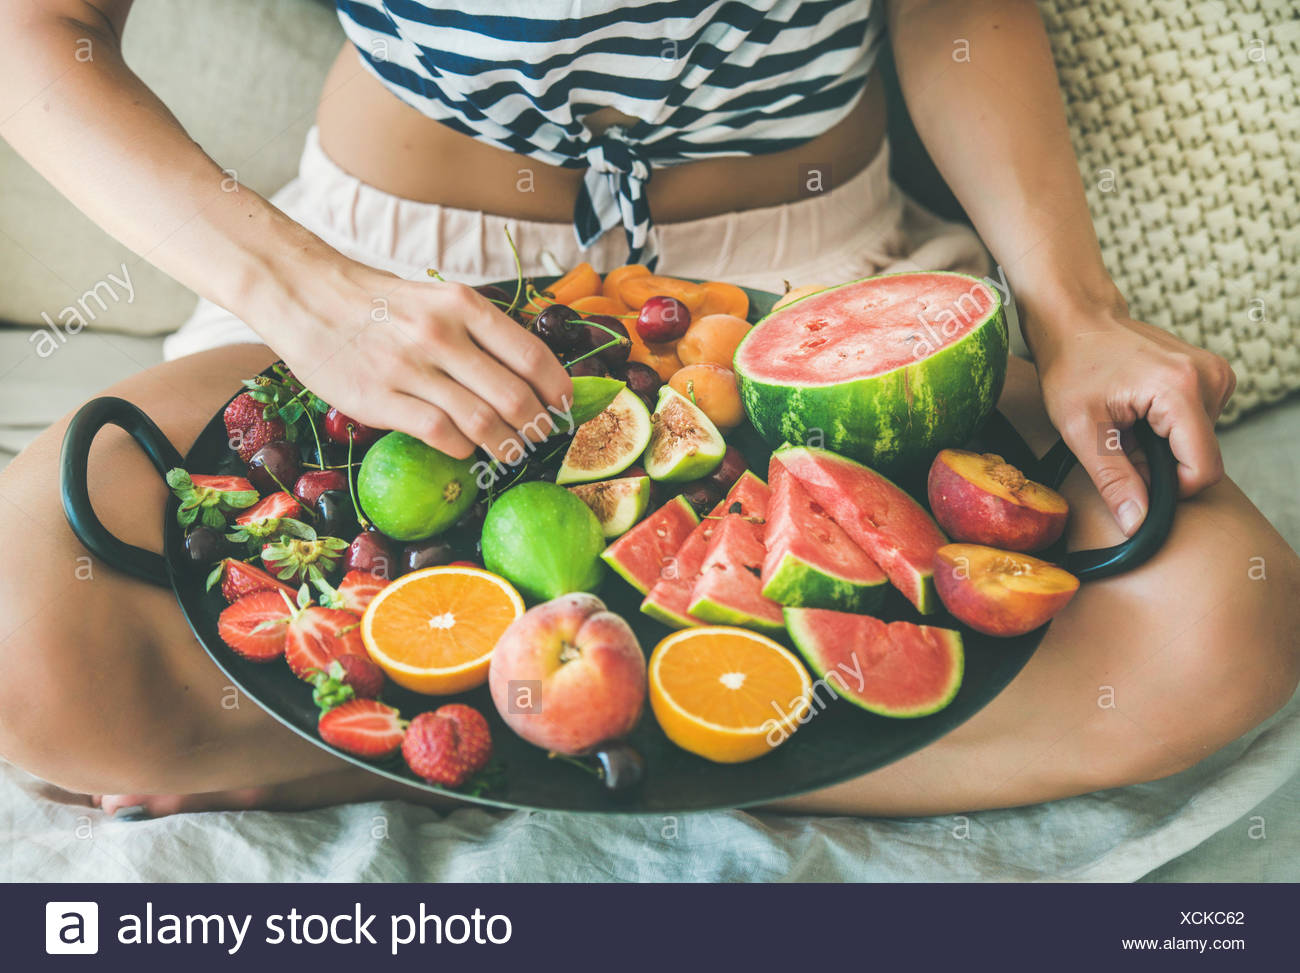 Summer healthy raw vegan clean eating breakfast in bed concept. Young girl wearing striped home shirt sitting and taking fruit from tray full of fresh - Stock Image